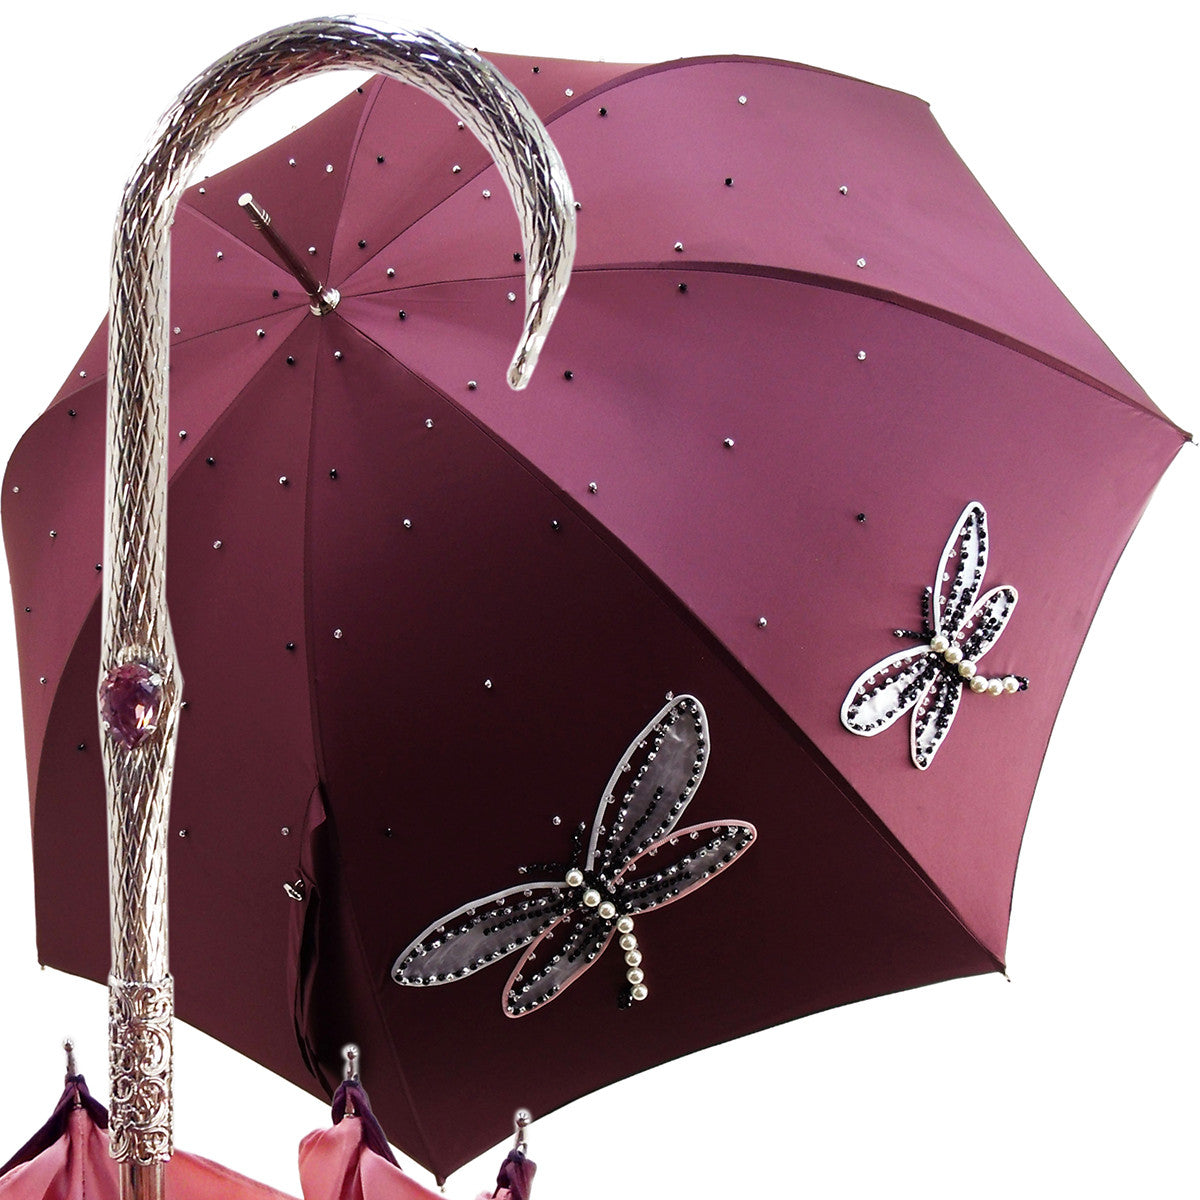 Women's exclusive handmade umbrella with embroidered dragonflies - il-marchesato